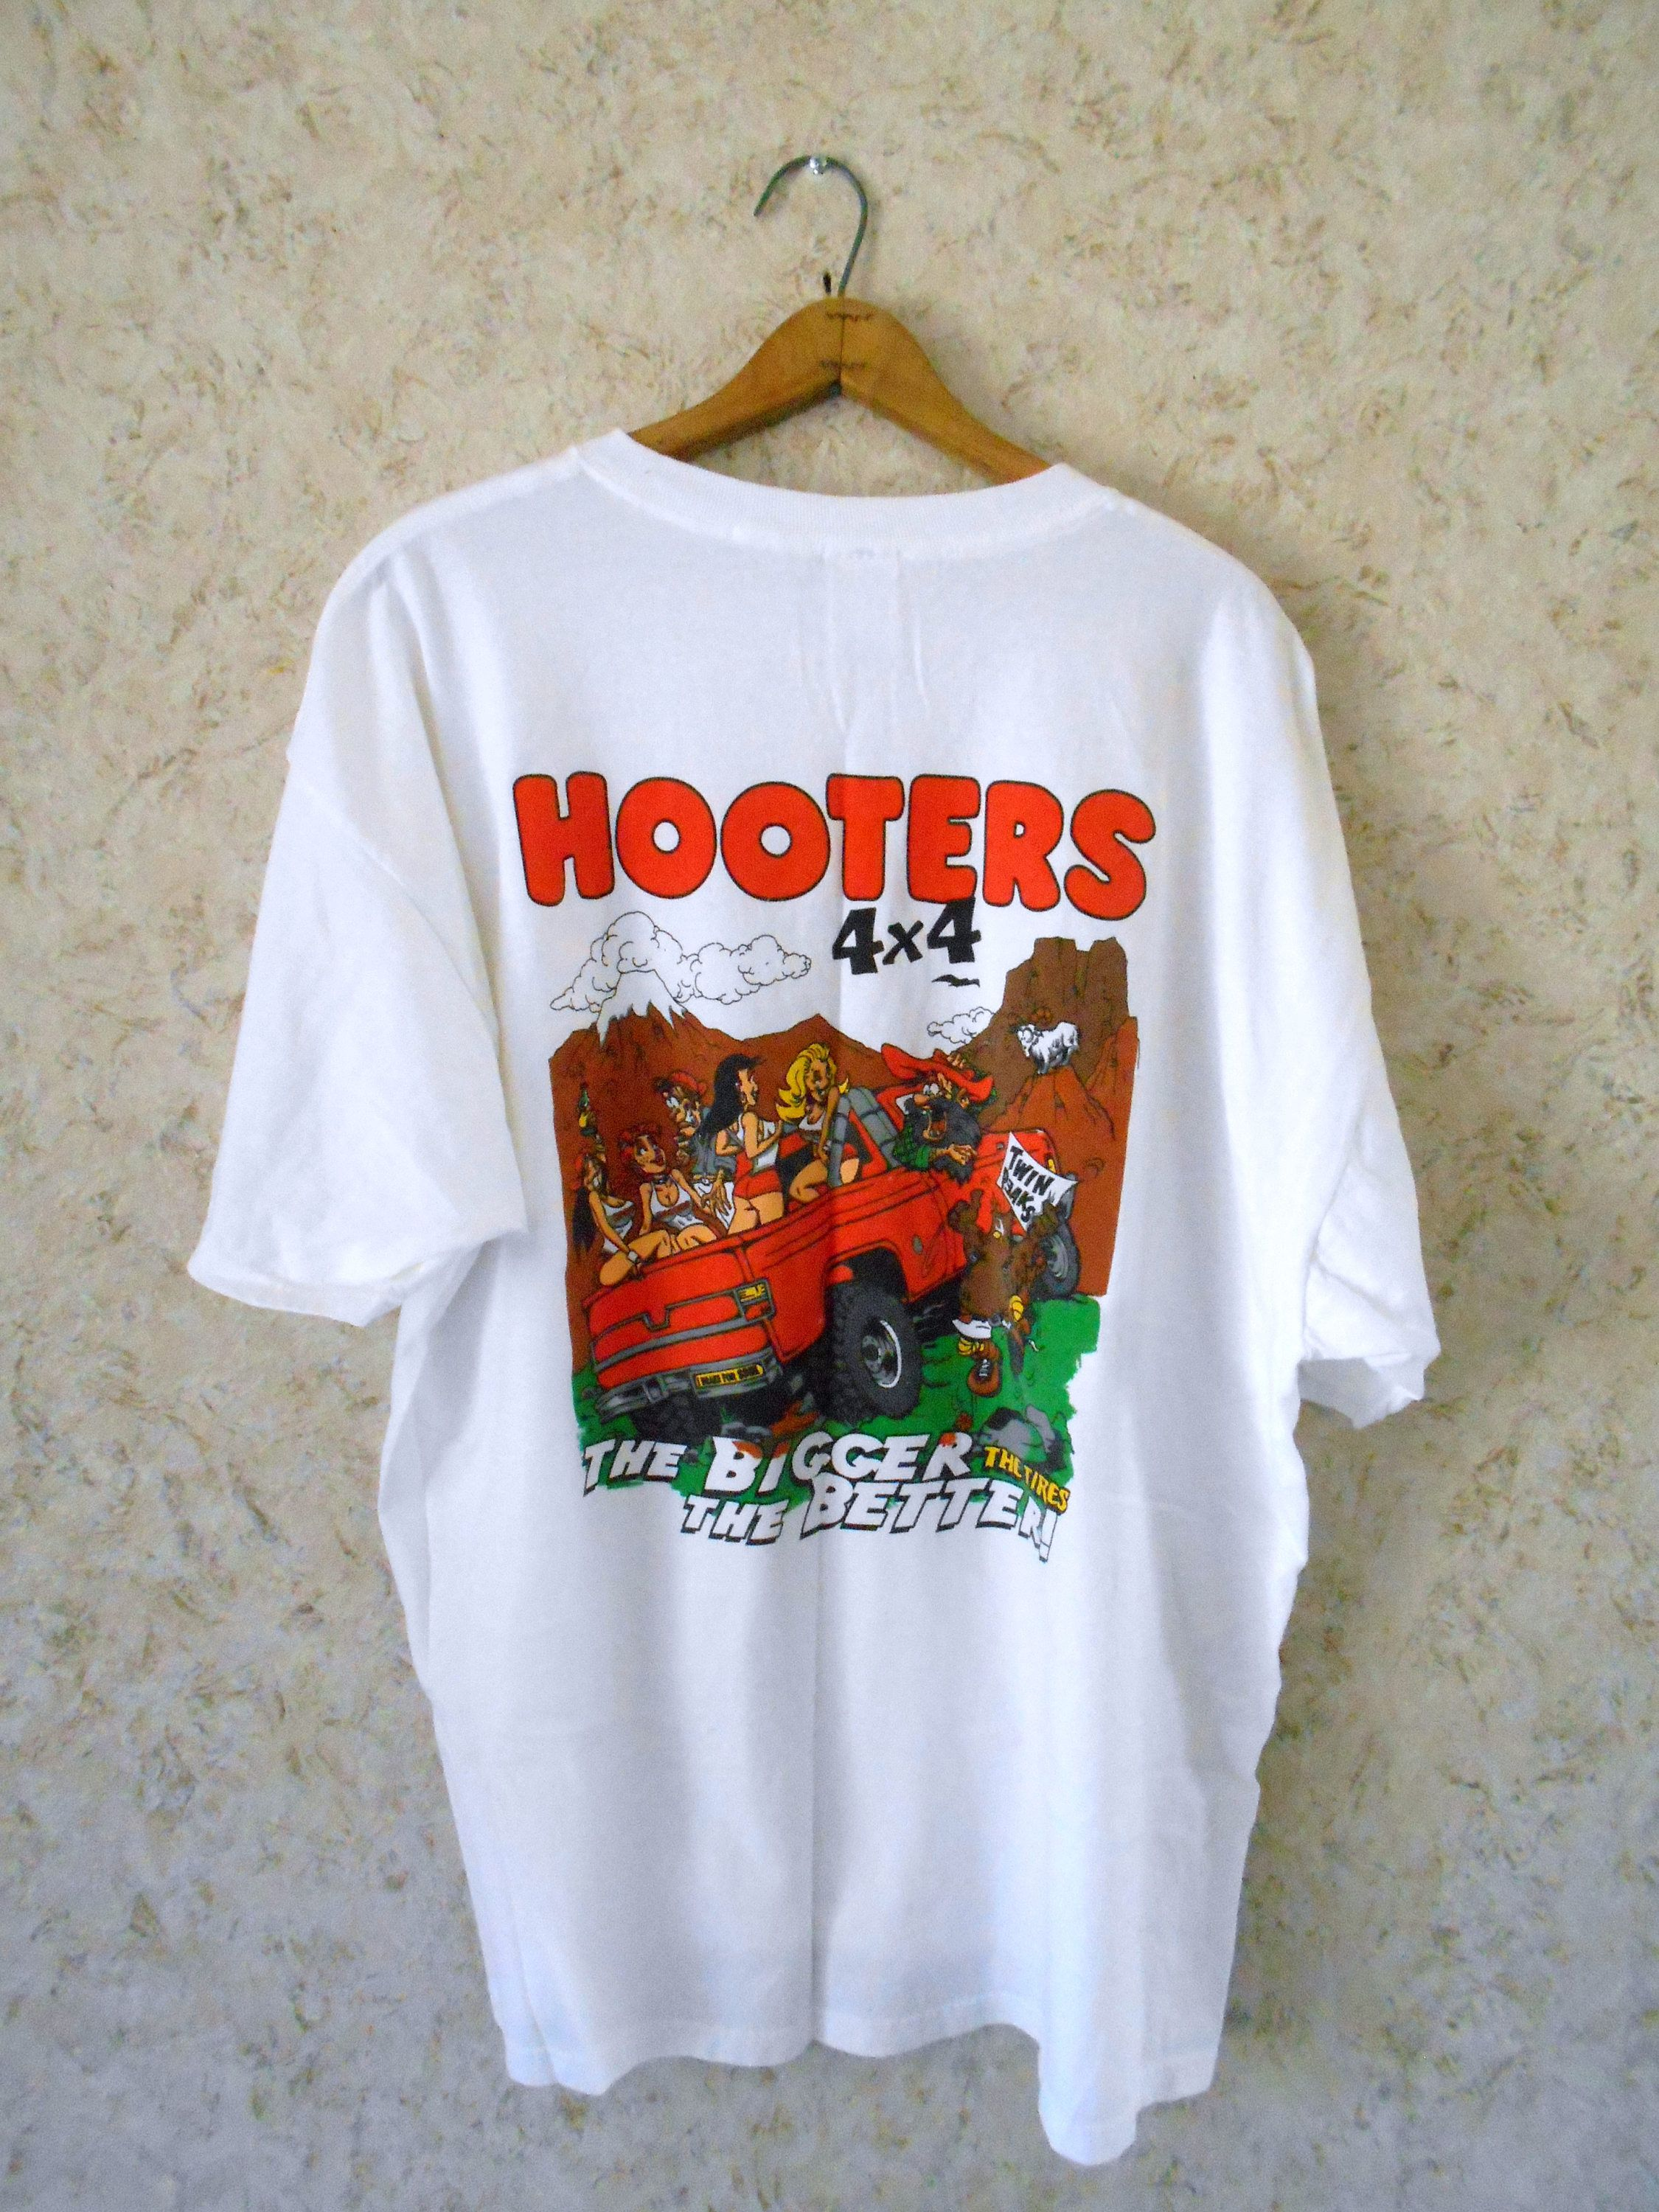 7a87b401e Vintage Hooters 4X4 Novelty Tee T Shirt Twin Peaks Cartoon Humor Restaurant  White Crewneck Short Sleeves Retro Hip Hop Mens Size 2XL by CoolDogVintage  on ...